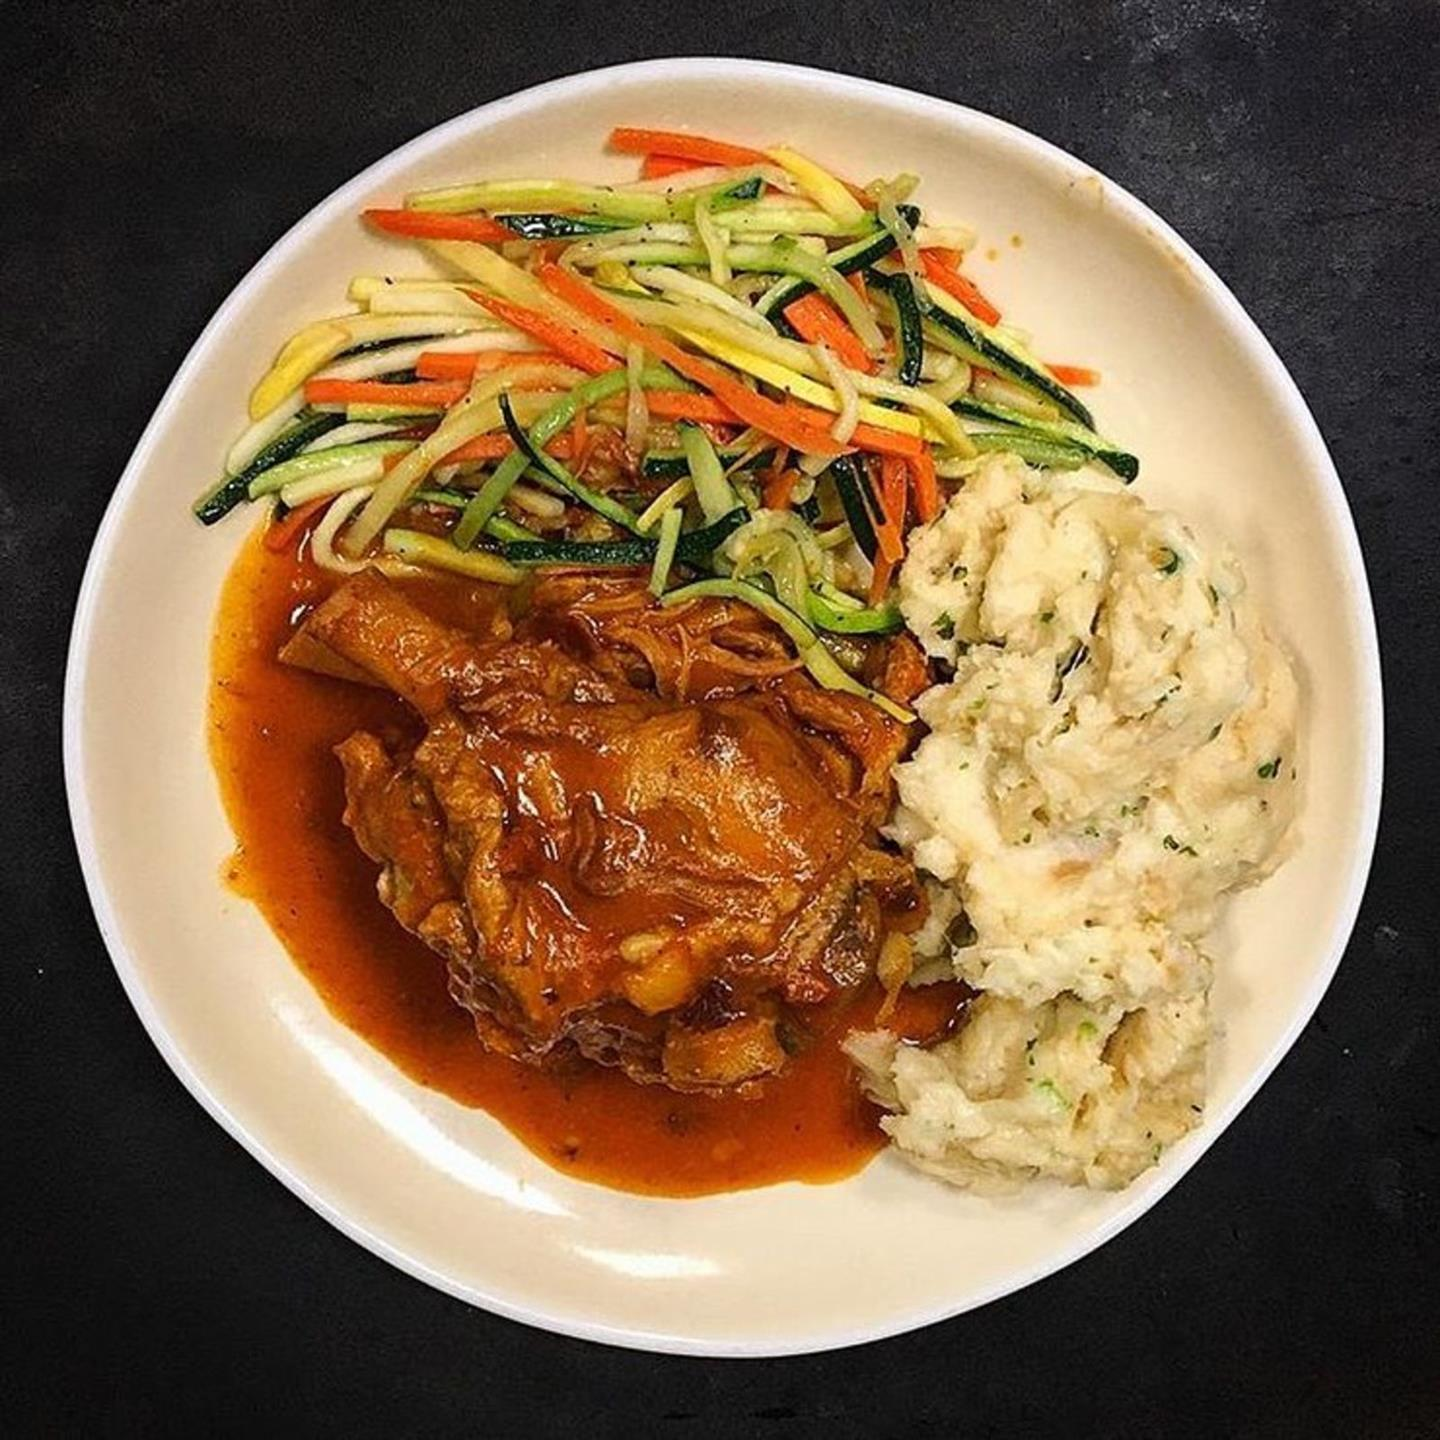 grilled chicken with shredded vegetables and mashed potatoes